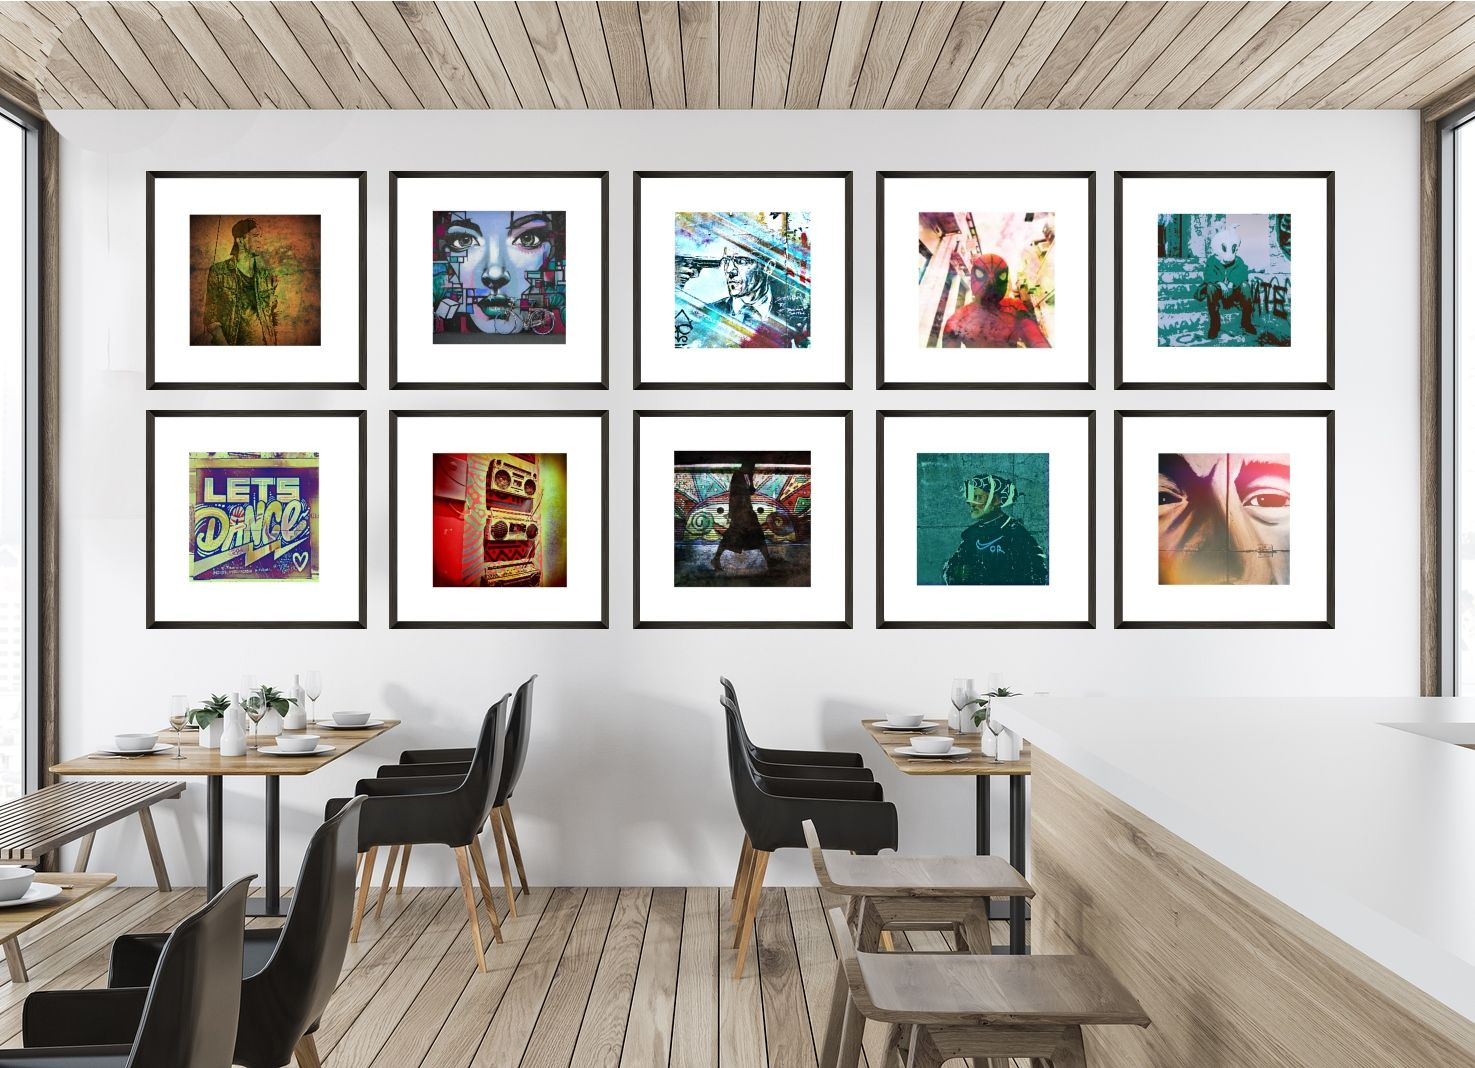 Large Gallery Wall Grid Display Set In A Minimalist Casual Dining Restaurant Cafe Gallerywalls Urban Gallery Wall Grid Gallery Wall Inspiring Art Prints